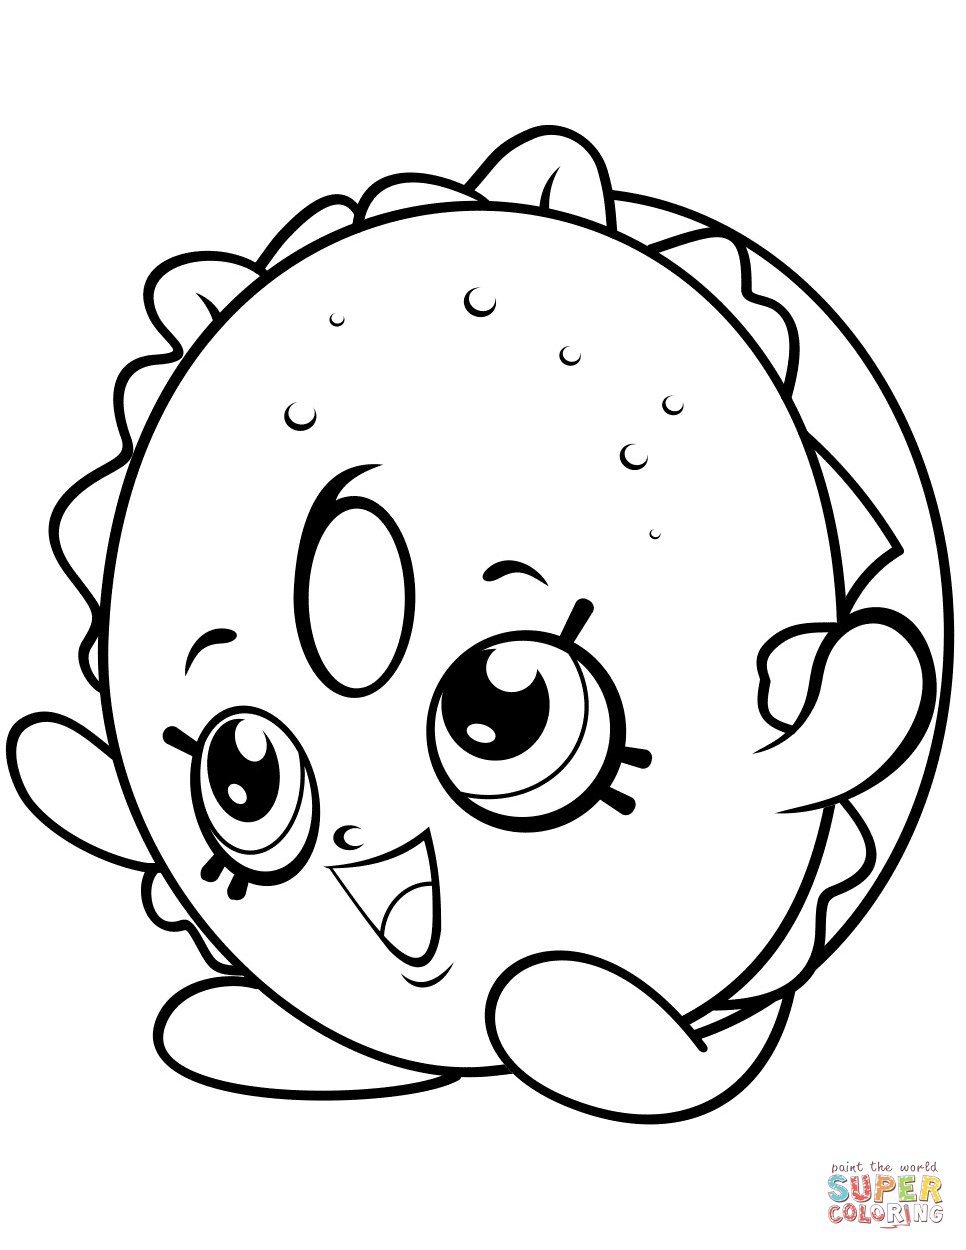 Bagel billy shopkin coloring page free printable coloring pages